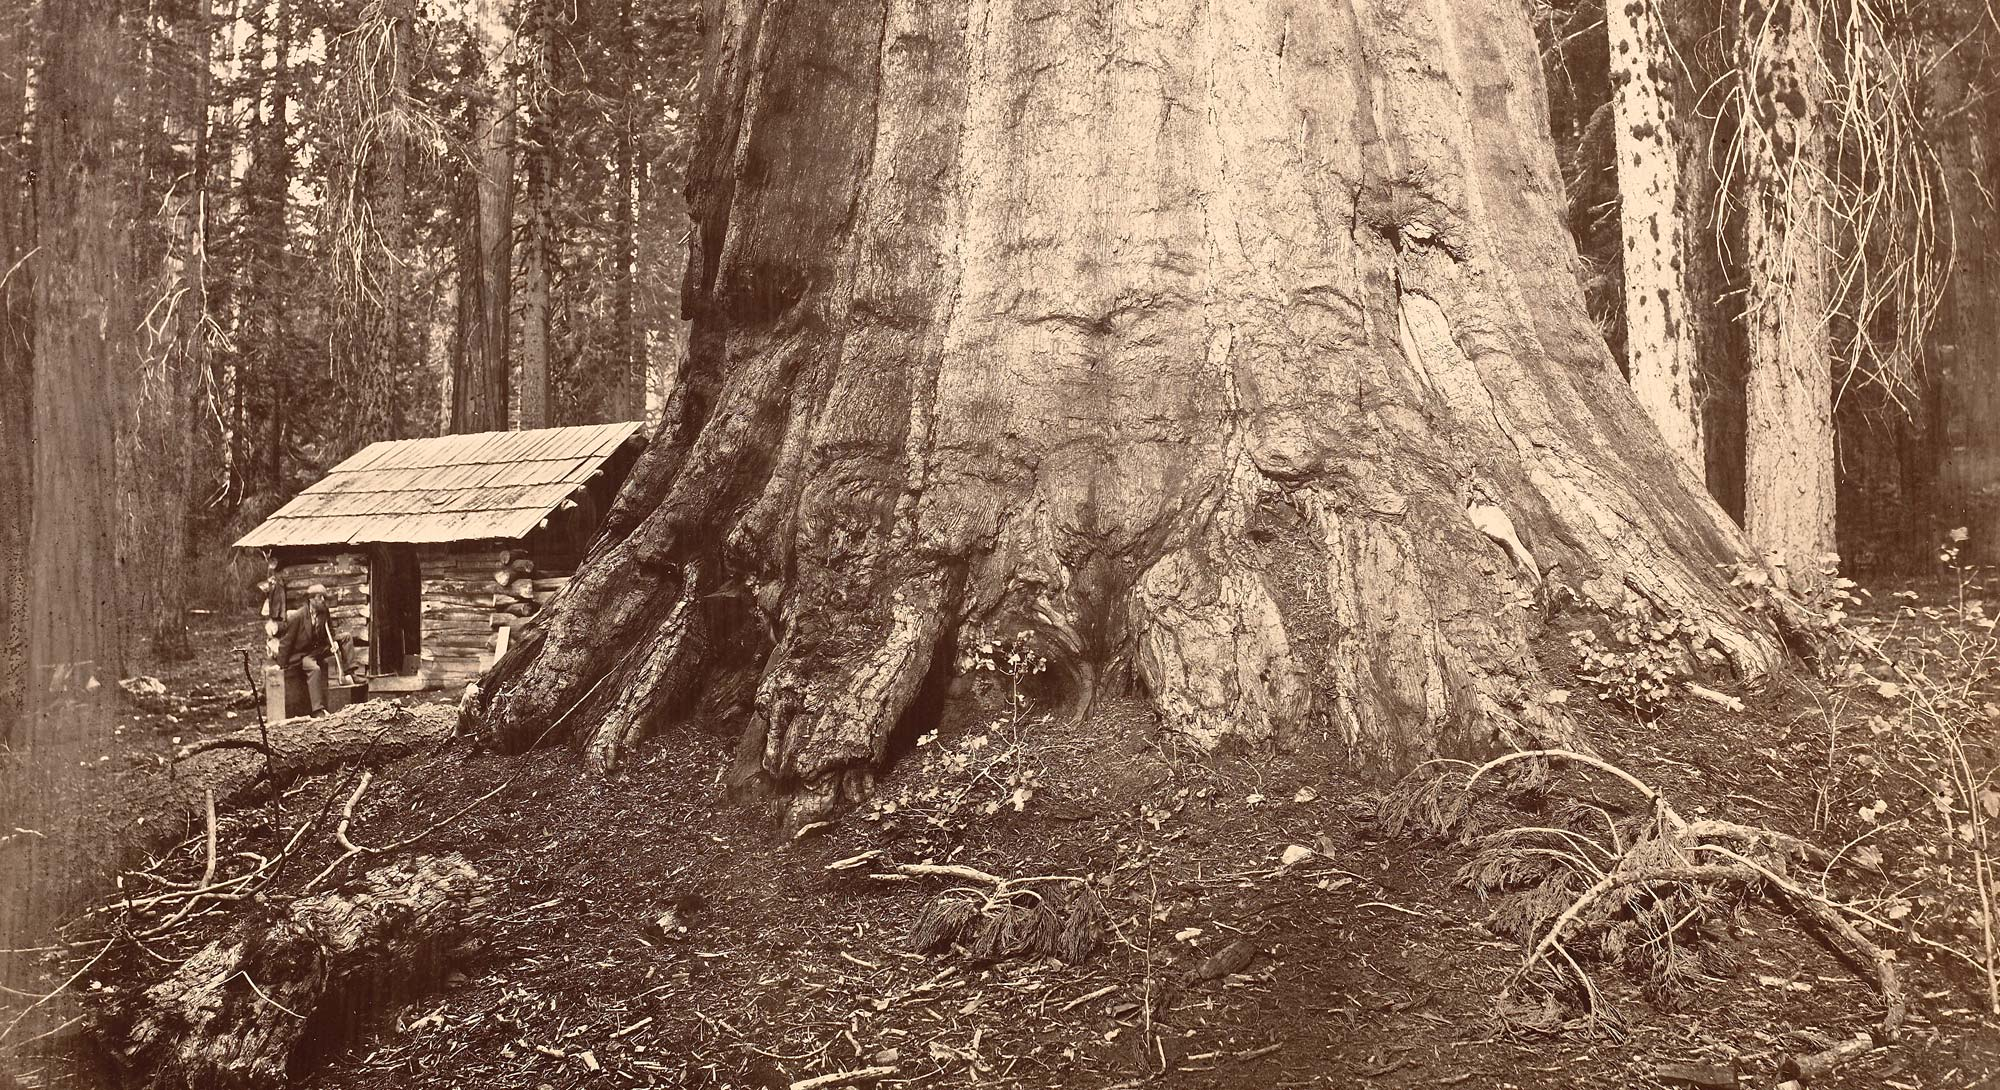 Eadweard Muybridge, Wm. H Seward, 85 Feet in Circumference. Mariposa Grove of Mammoth Trees, No. 51, 1872. Albumen silver print mounted to card stock, 16 15/16 x 21 9/16 in. (43 x 54.7 cm) (image). FAMSF, gift of Mrs. Raymond Perkins, 42854.1